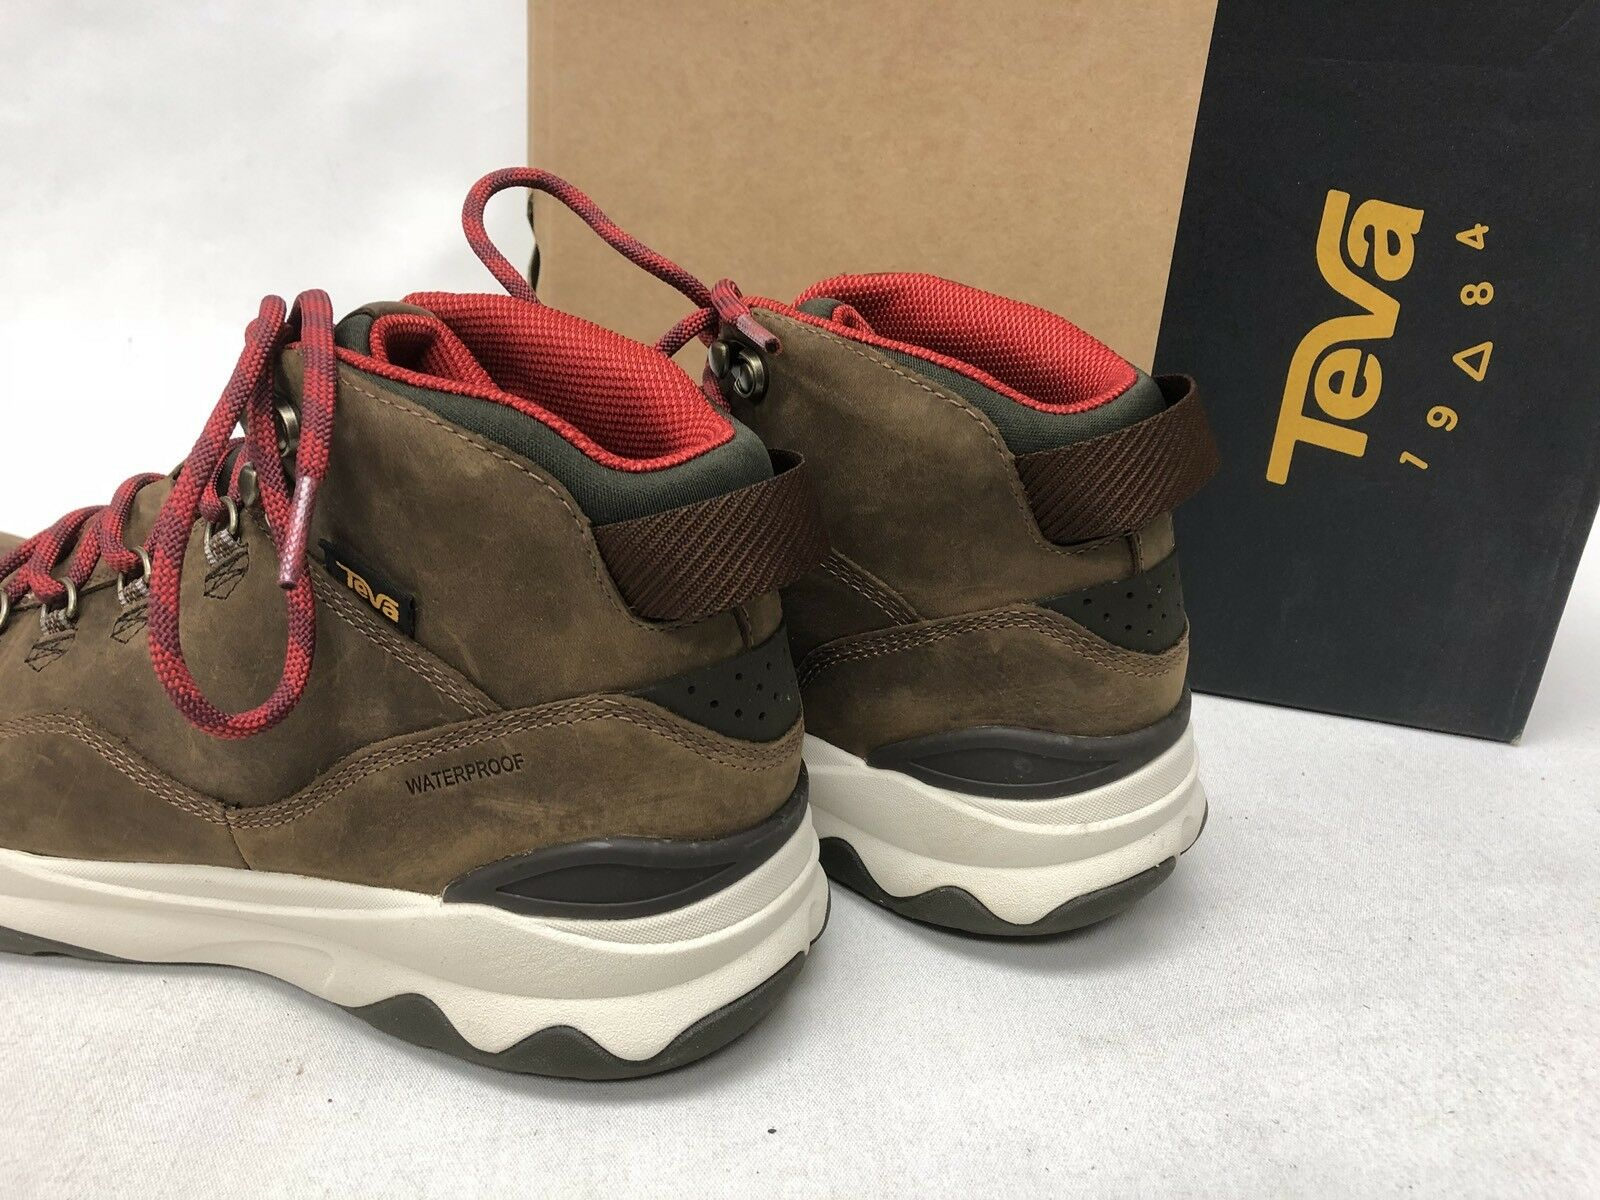 TEVA TEVA TEVA ARROWOOD Utility Mid WP Brown Pelle TRAIL BOOTS Hiking High 1017168 size 0b5b5a